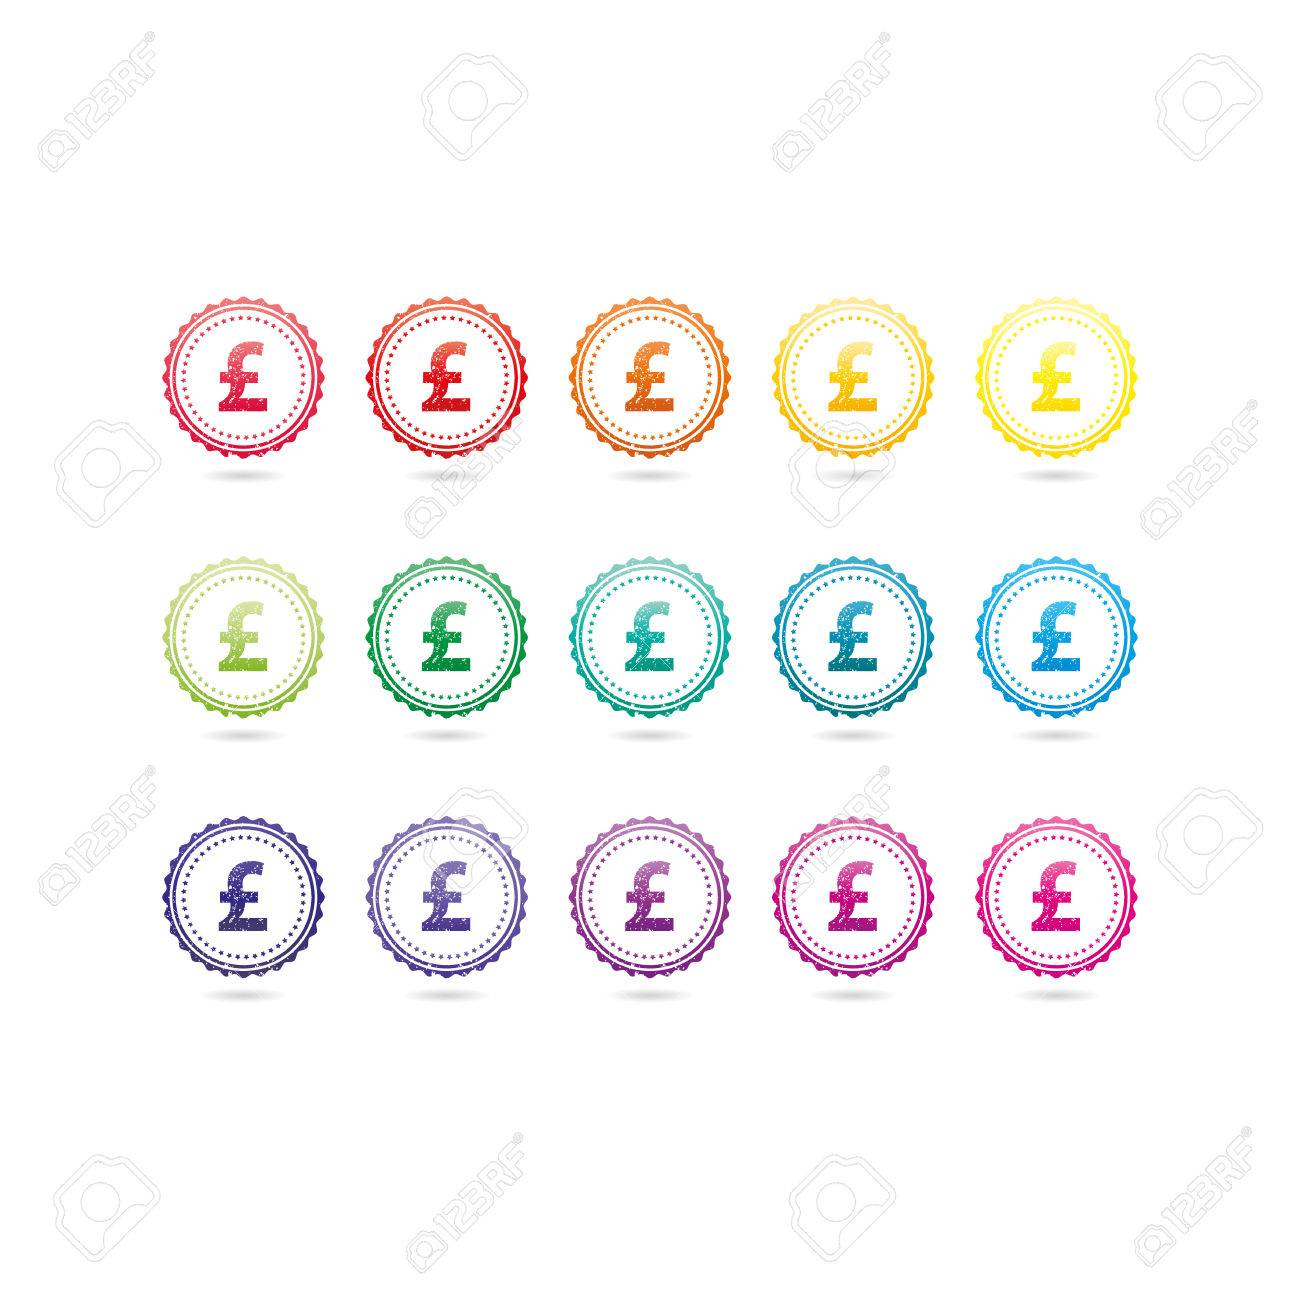 British Pound Sterling Currency Grunge Symbols Colorful Hipster